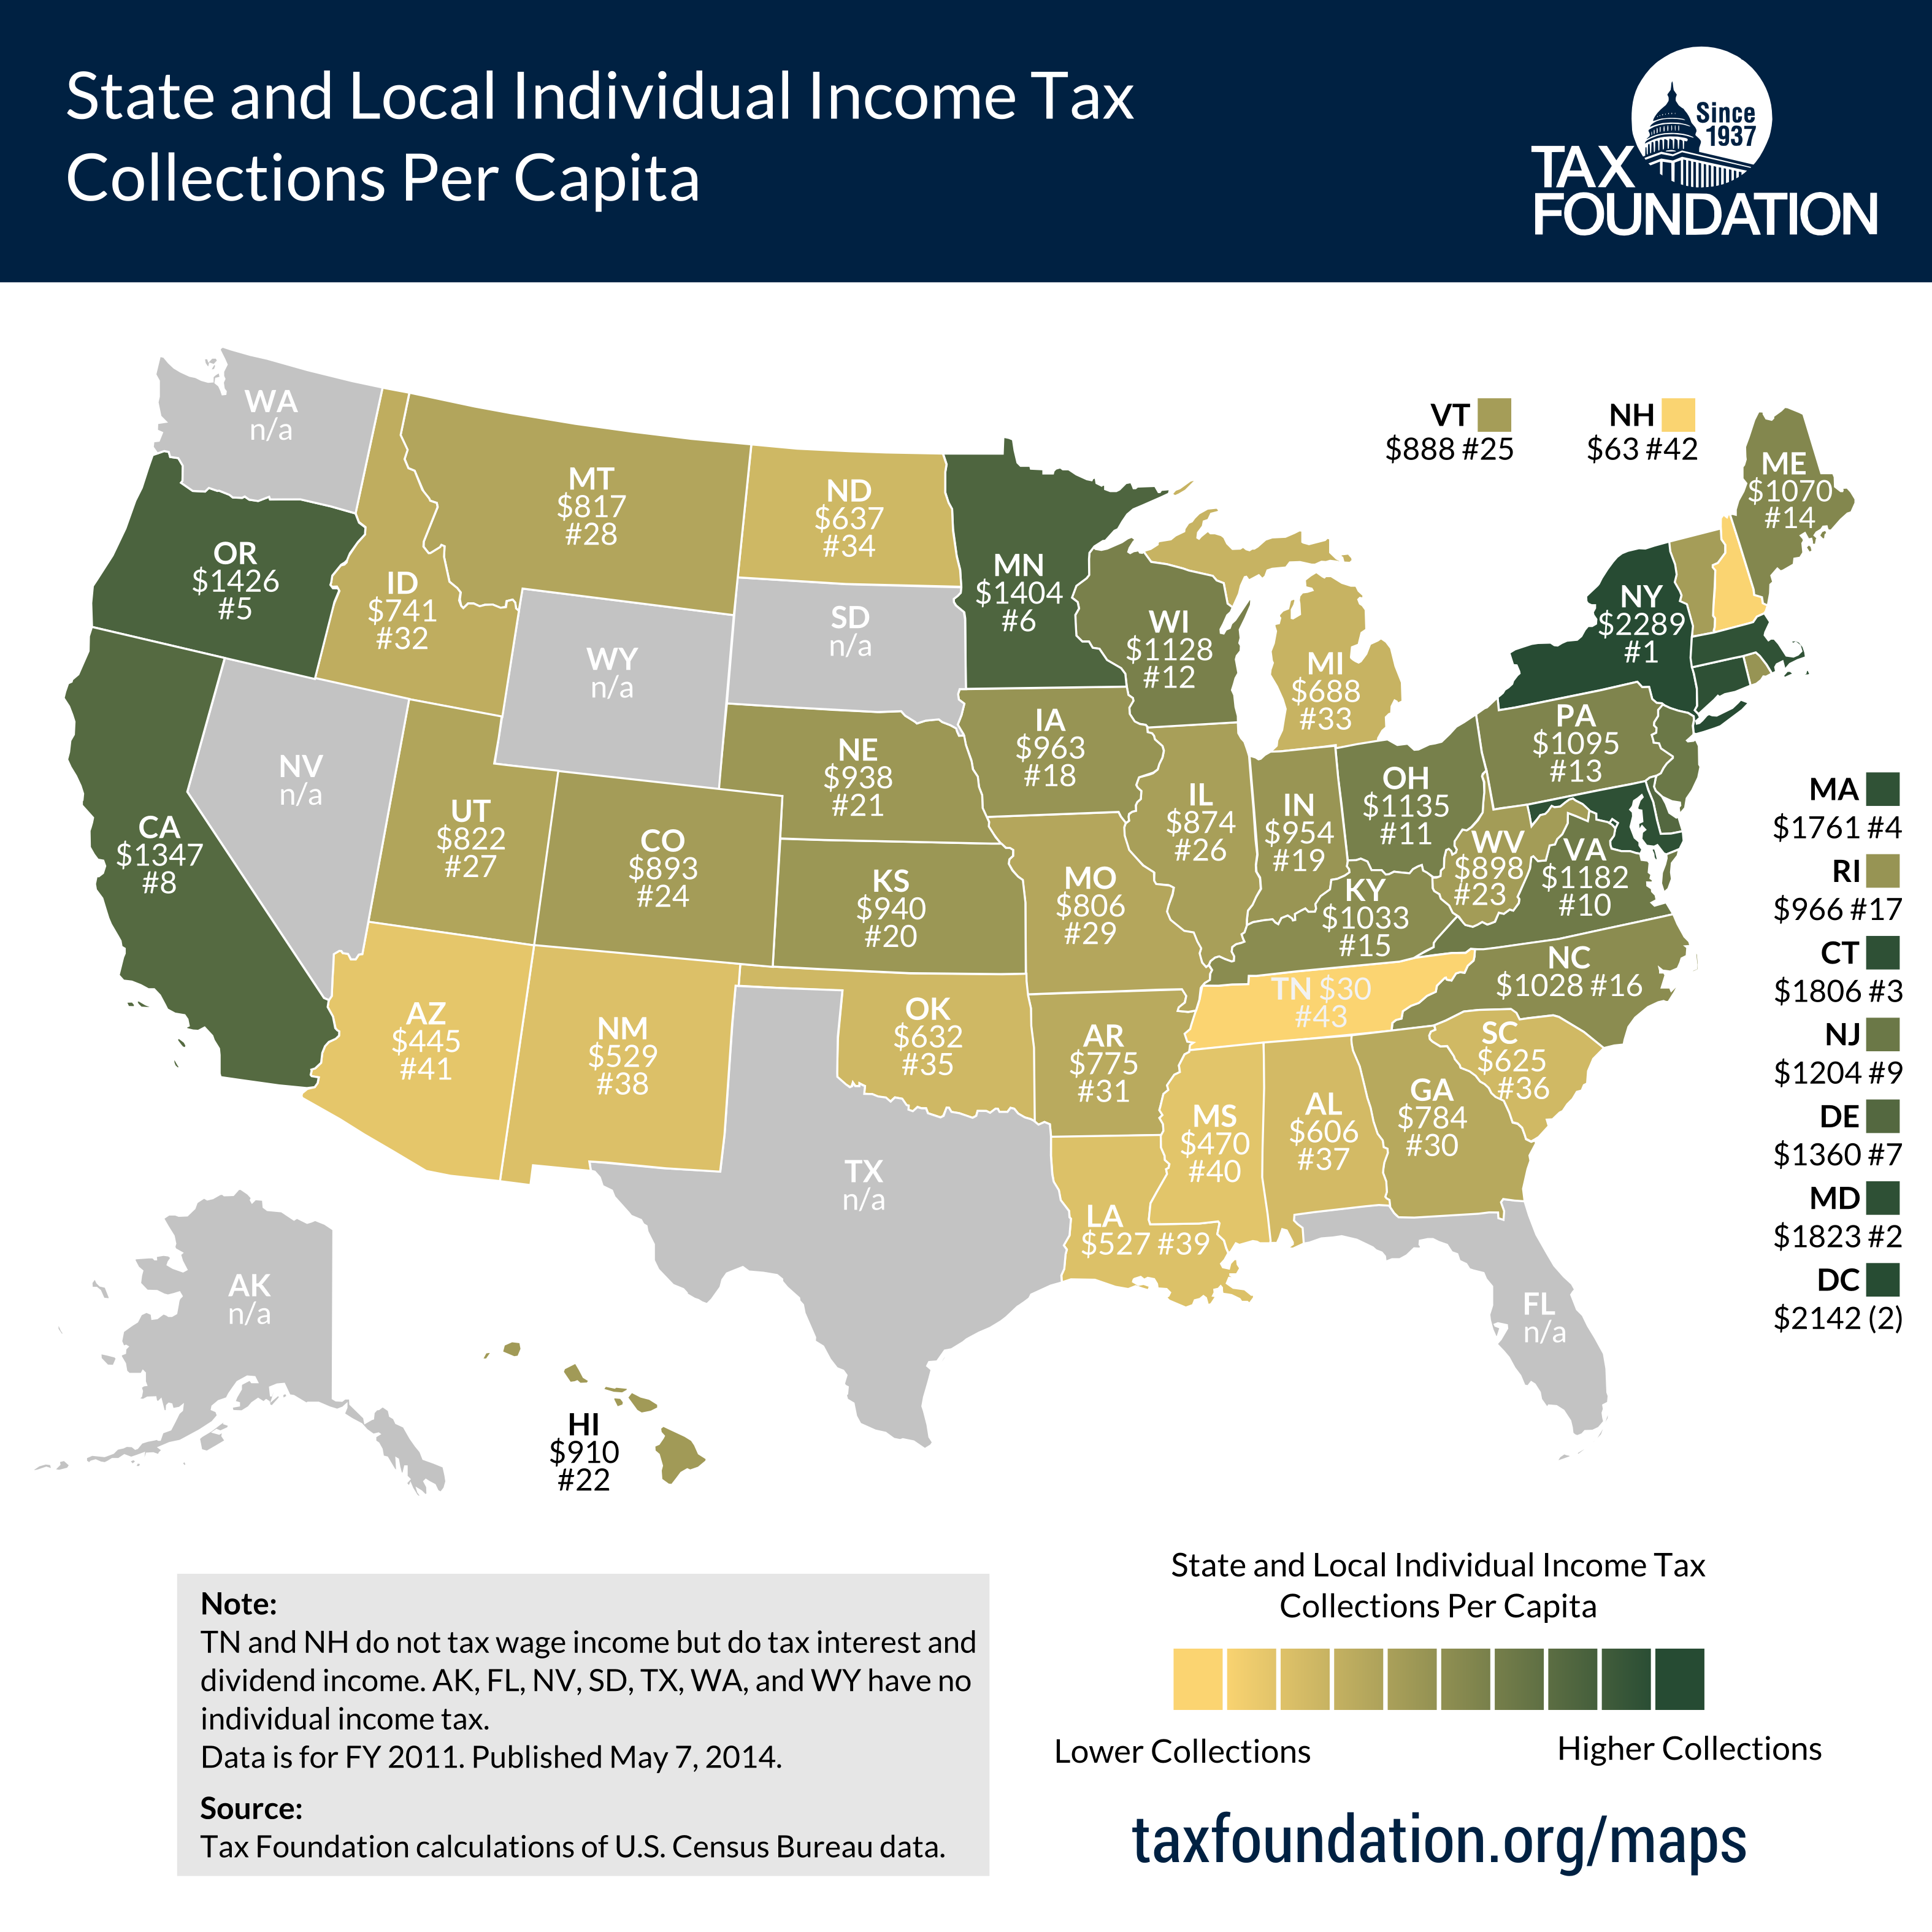 Map: State and Local Individual Income Tax Collections Per Capita